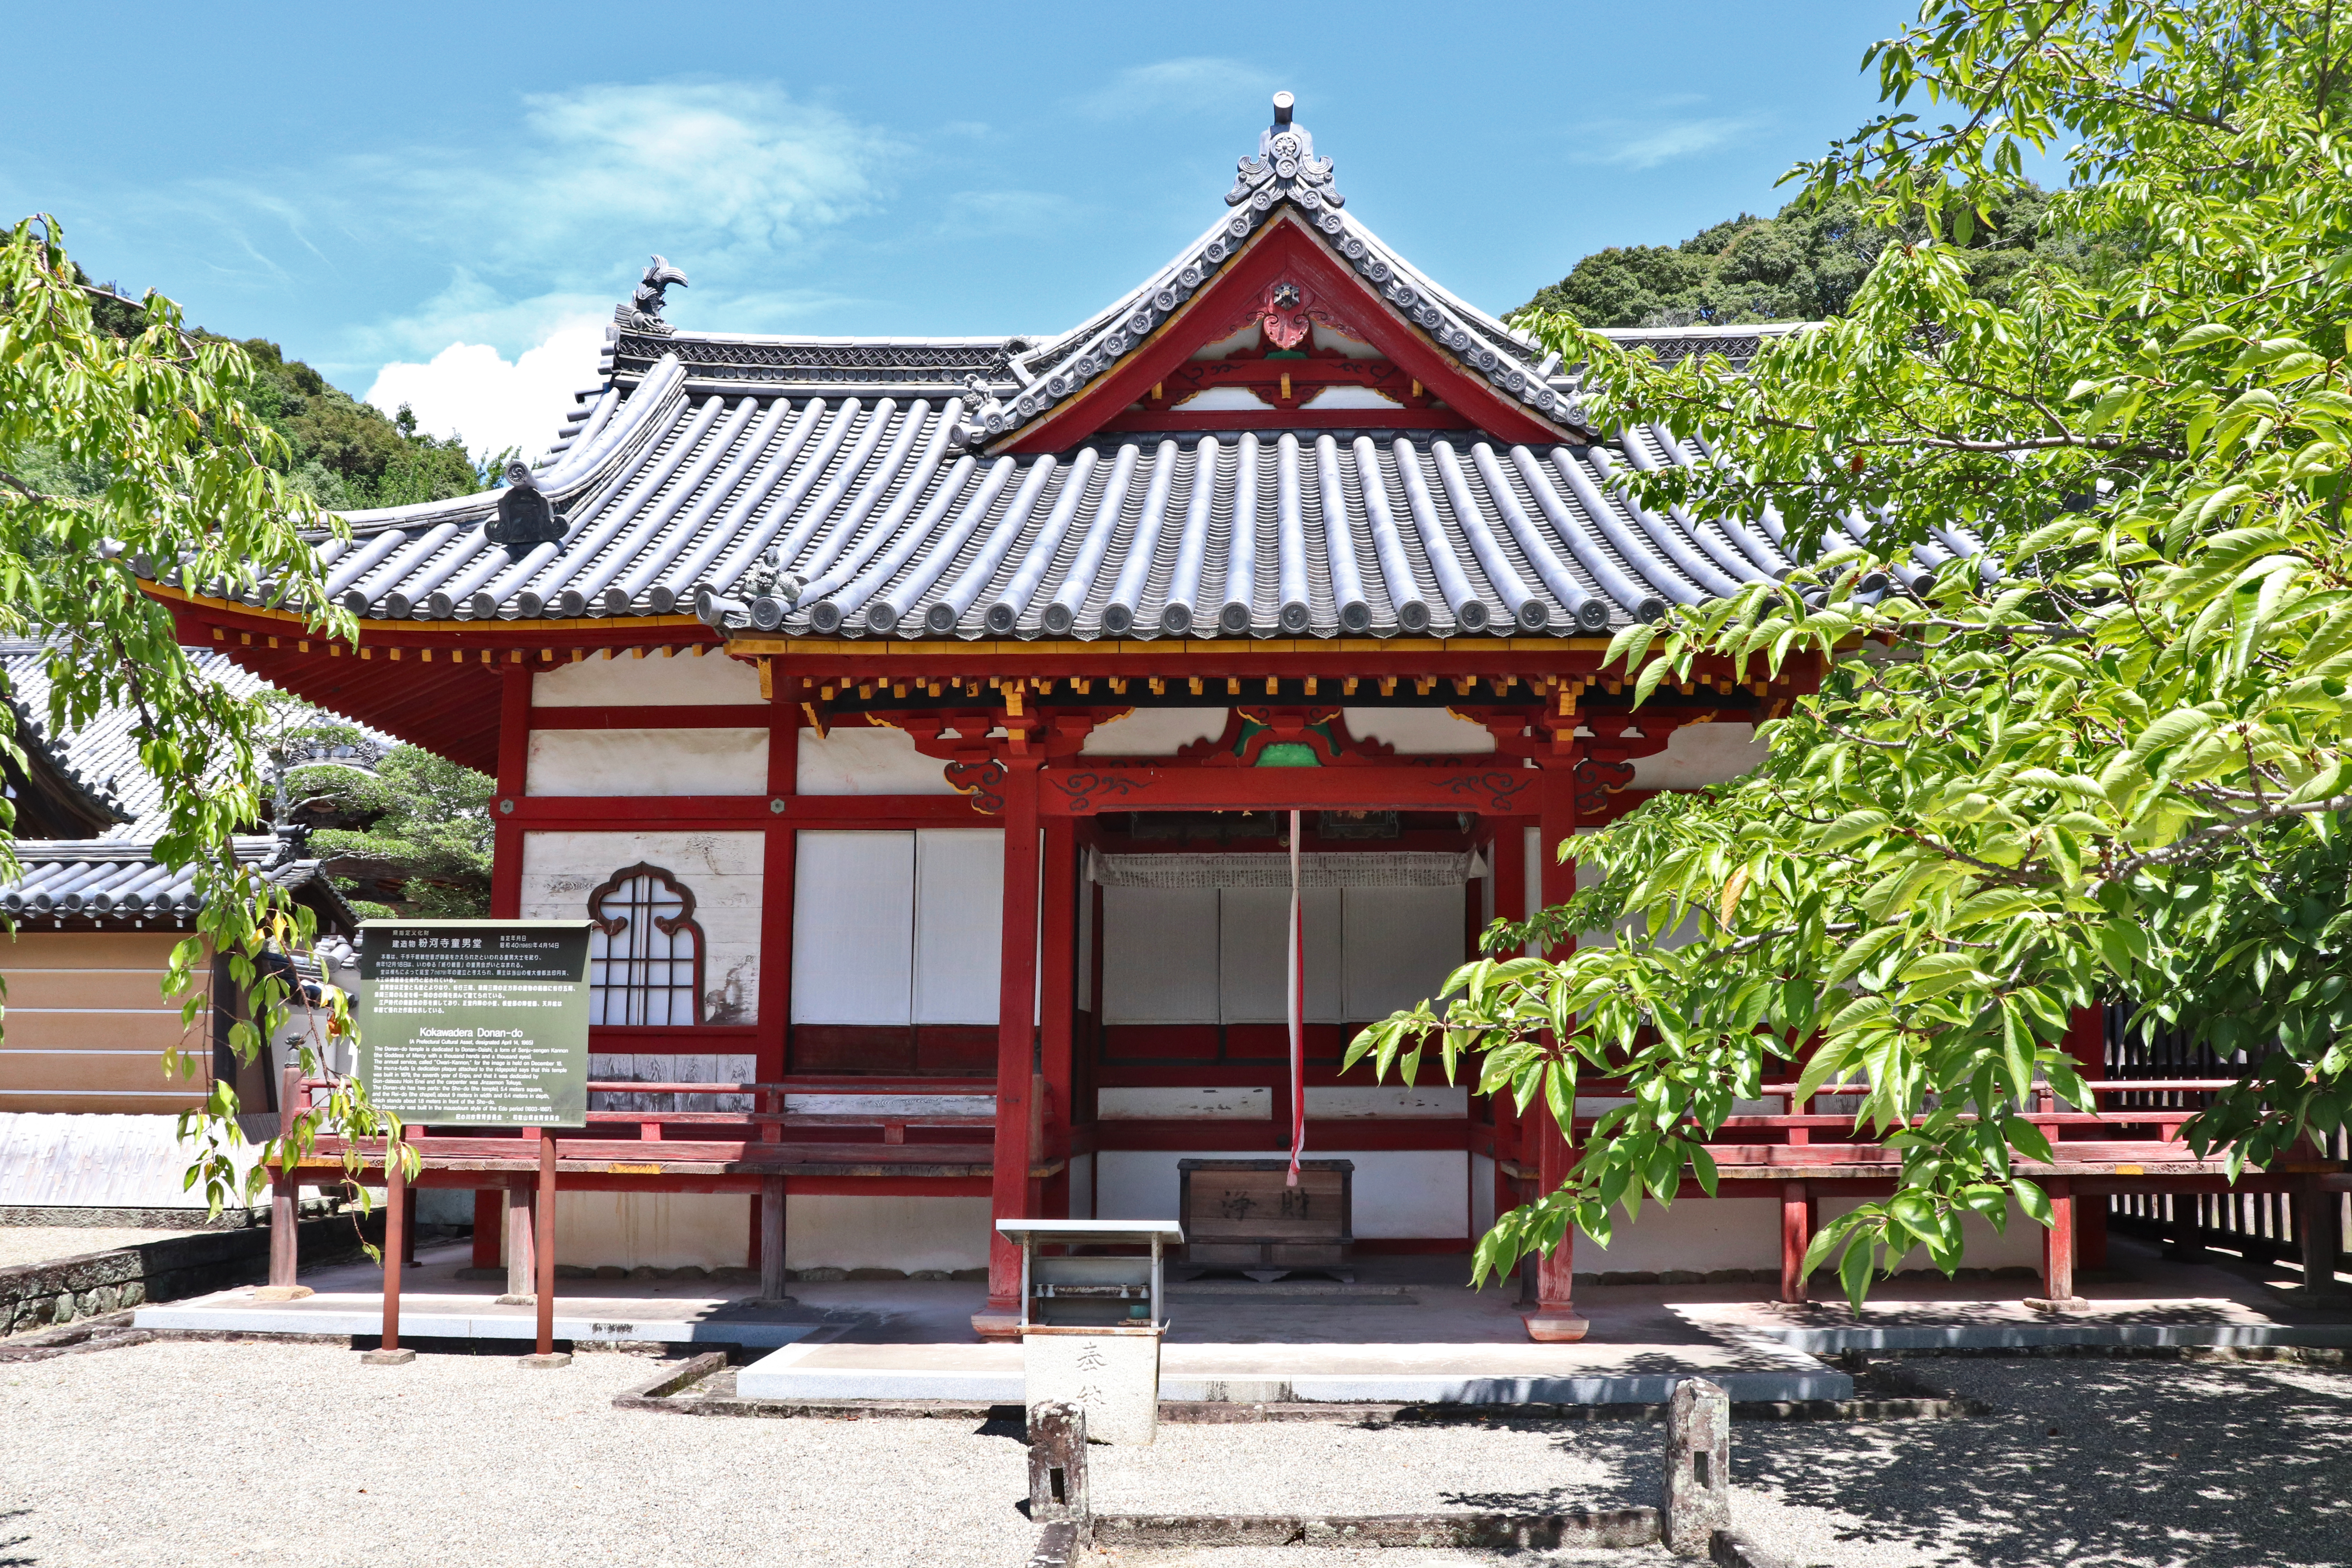 Donan-do of Kokawa-dera Temple